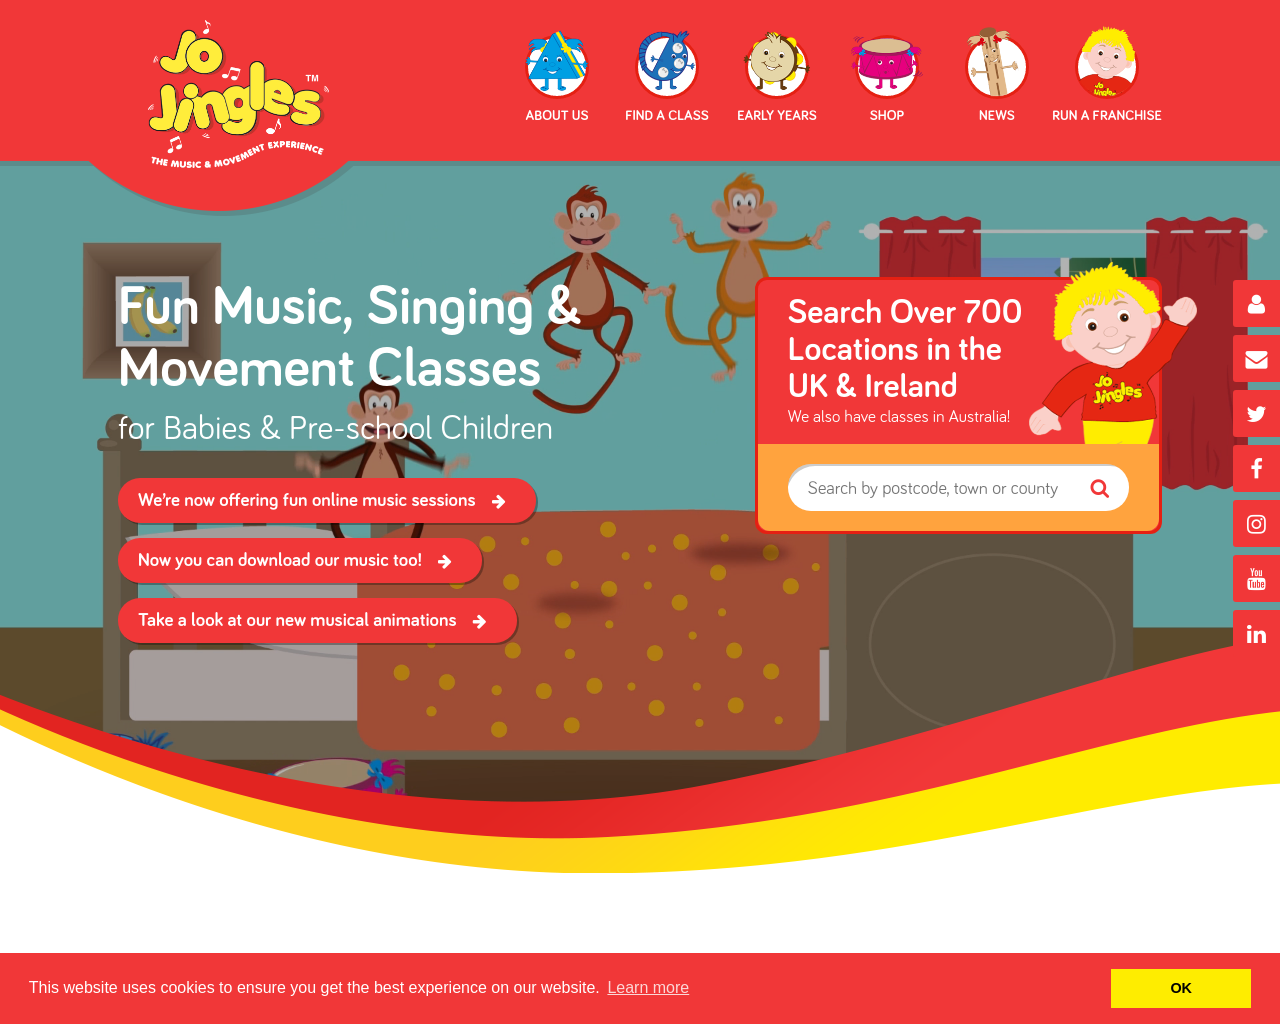 Find your local Jo Jingles class